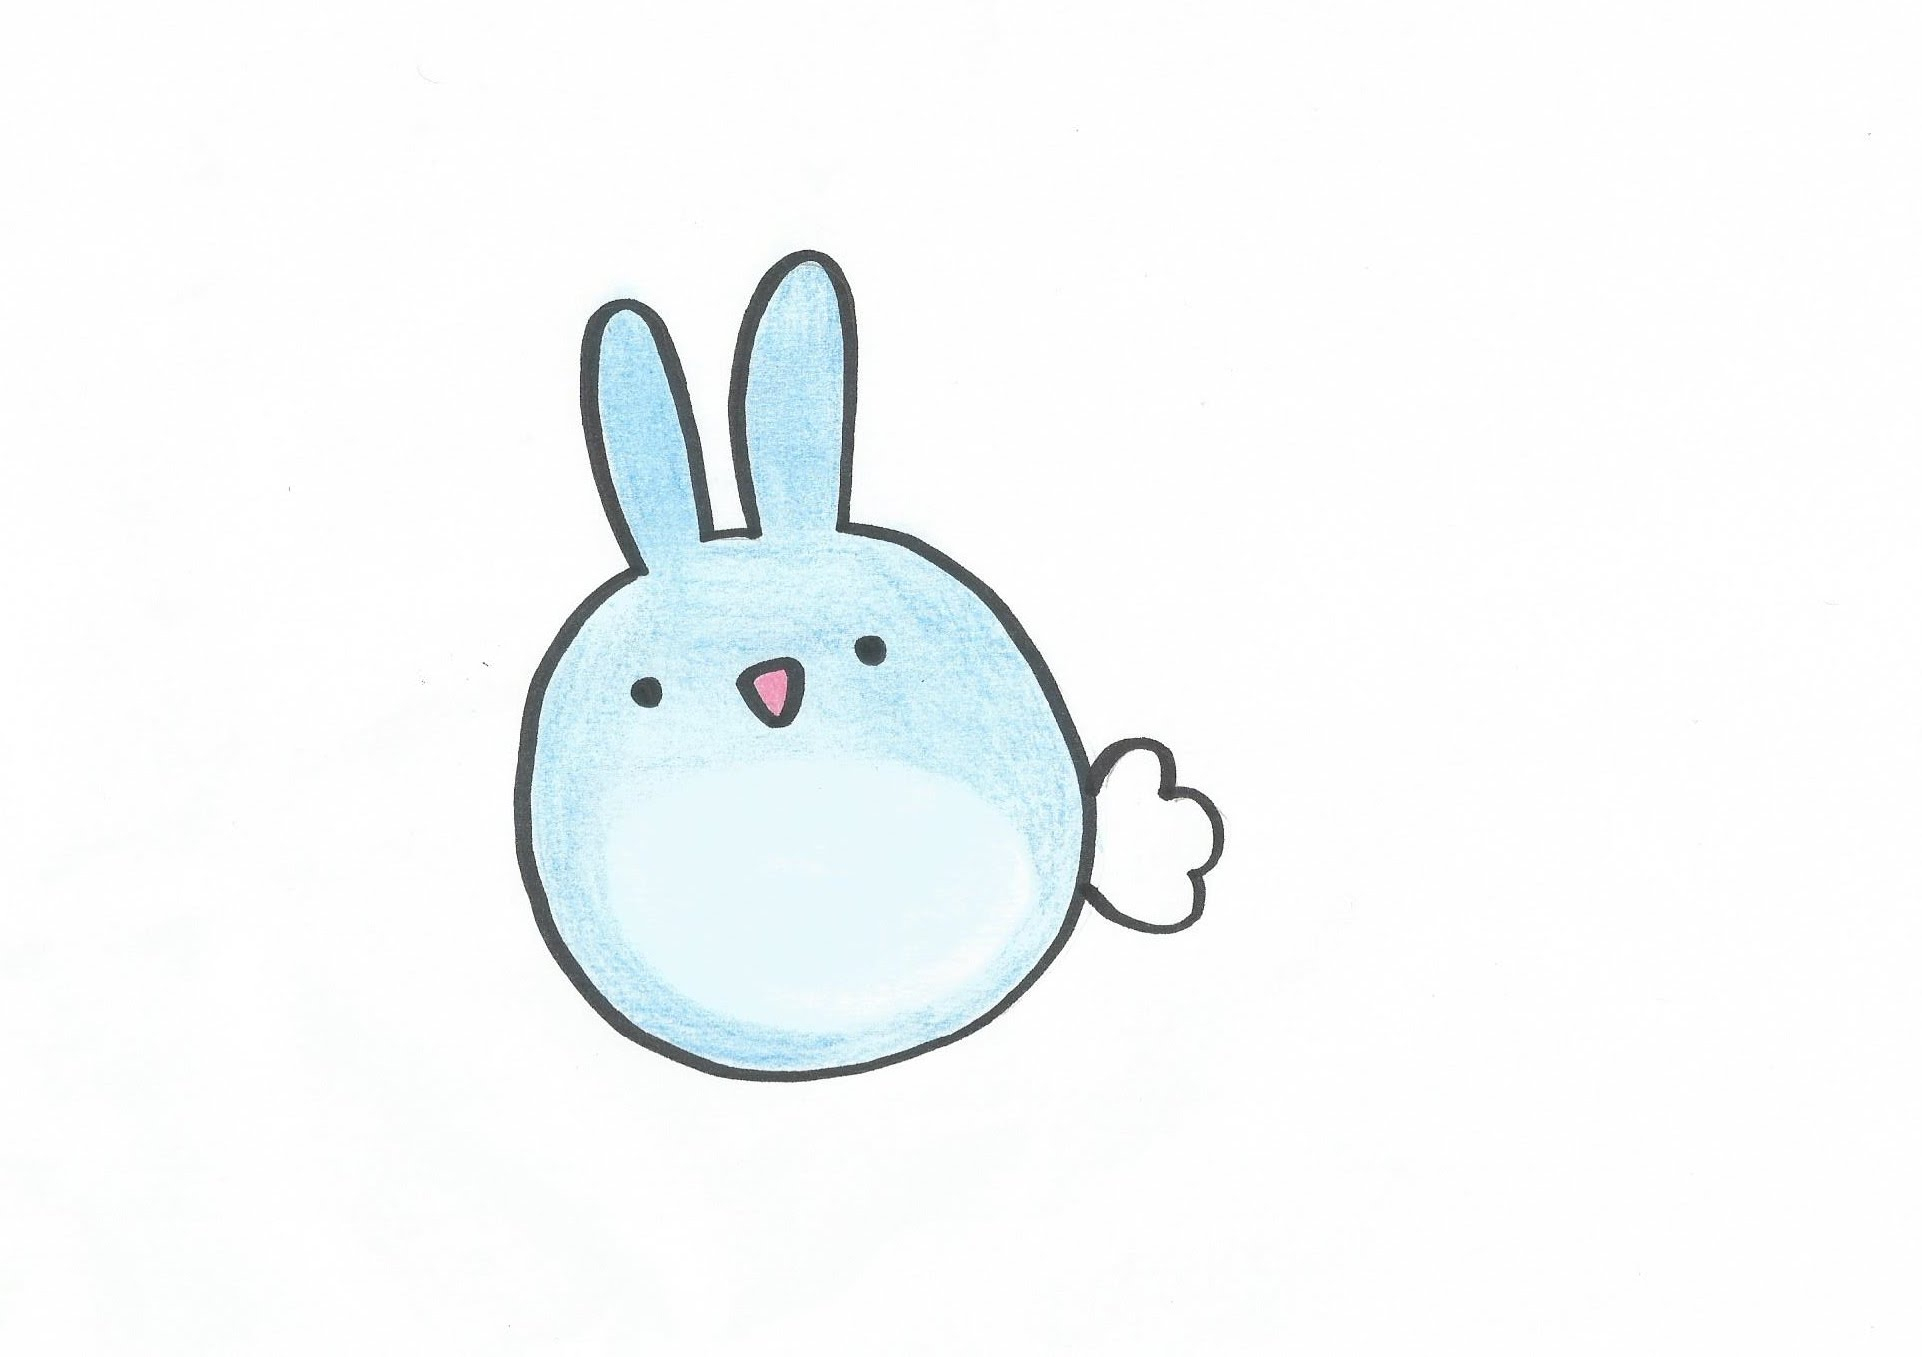 1922x1357 Cute Bunny Drawings Cute Brown Bunny Rabbit